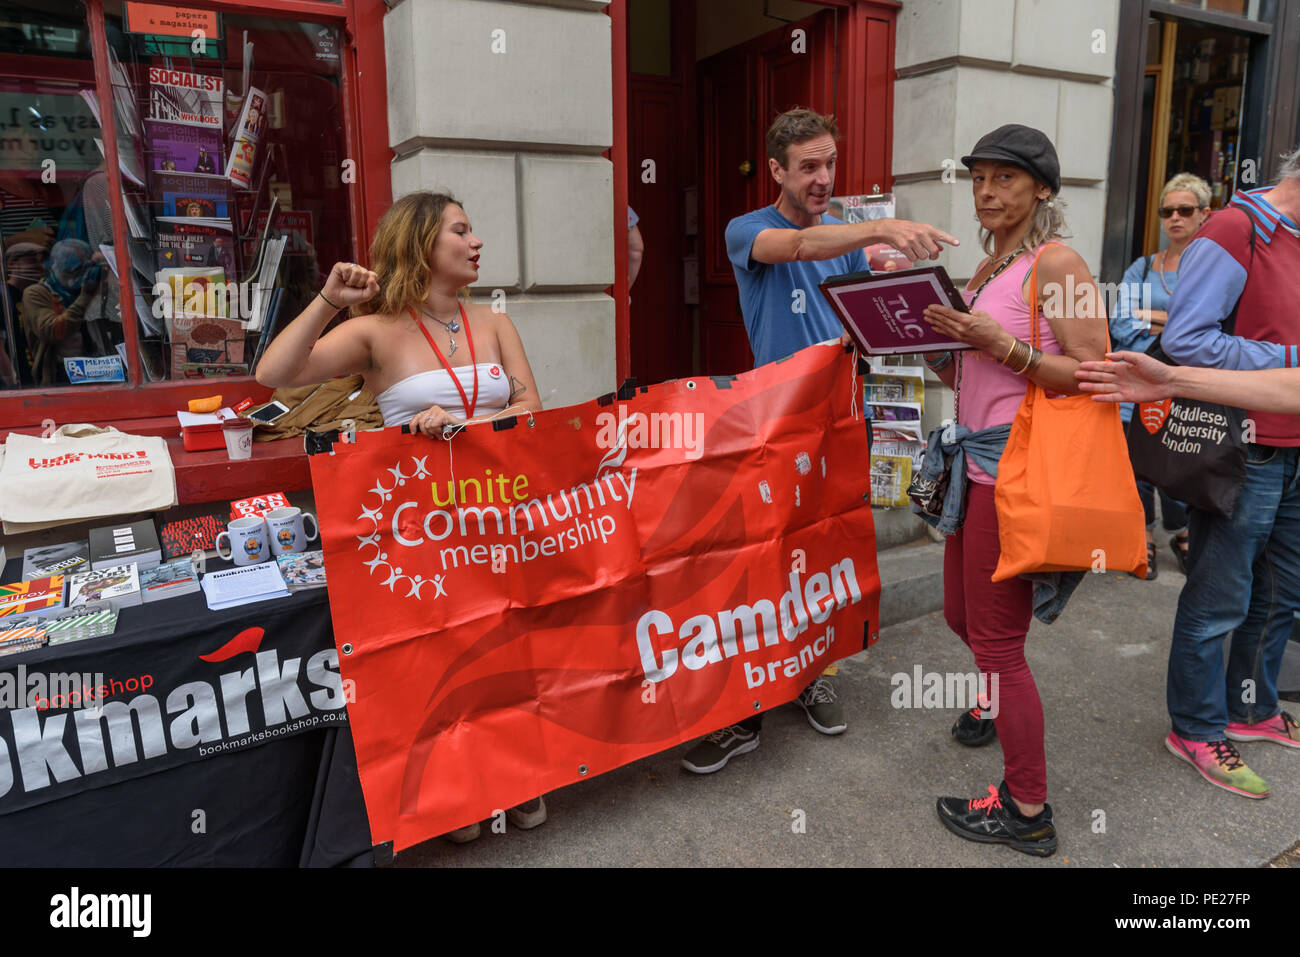 London, UK. 11th August 2018. 11th August 2018. Several hundred people from all parts of the labour movement including Unite Community had come to show solidarity and support the Bookmarks socialist bookshop a week after a group of Nazi thugs from 'Make Britain Great Again' invaded the shop in central London, shouting racist slogans and wrecking book displays. Credit: ZUMA Press, Inc./Alamy Live News - Stock Image